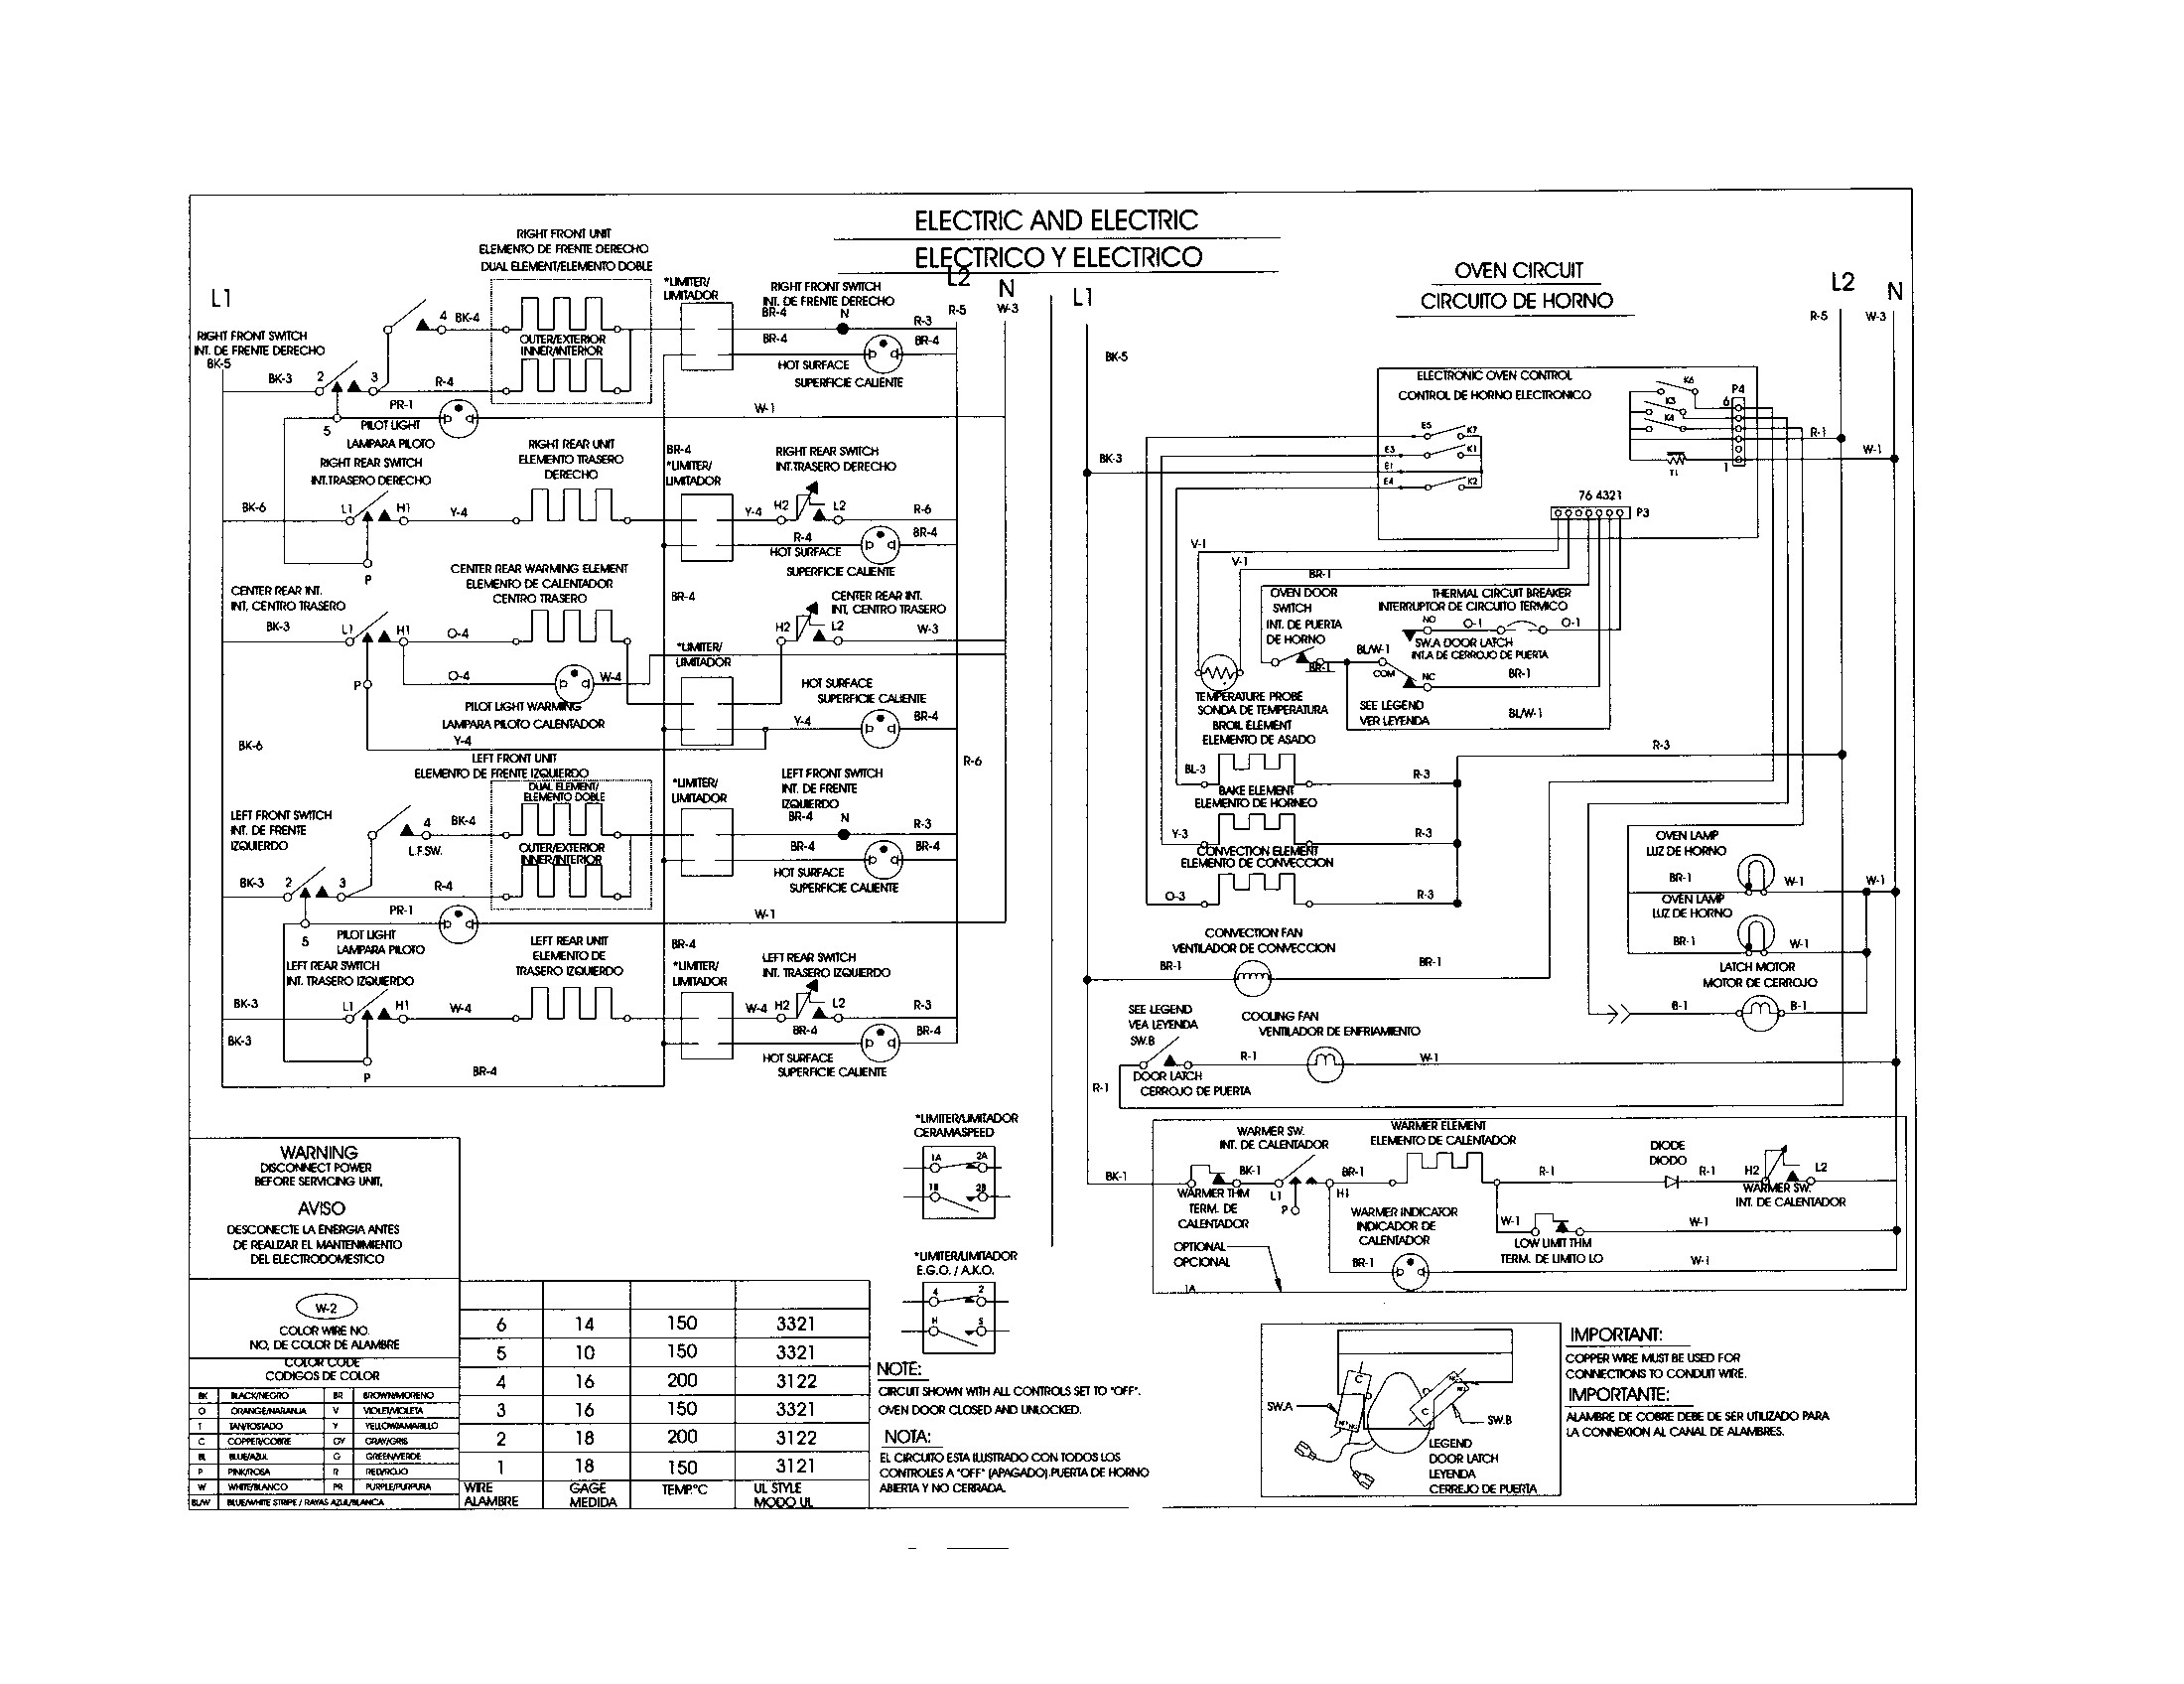 kenmore dryer power cord wiring diagram - wiring diagram kenmore dryer  reference kenmore dryer power cord